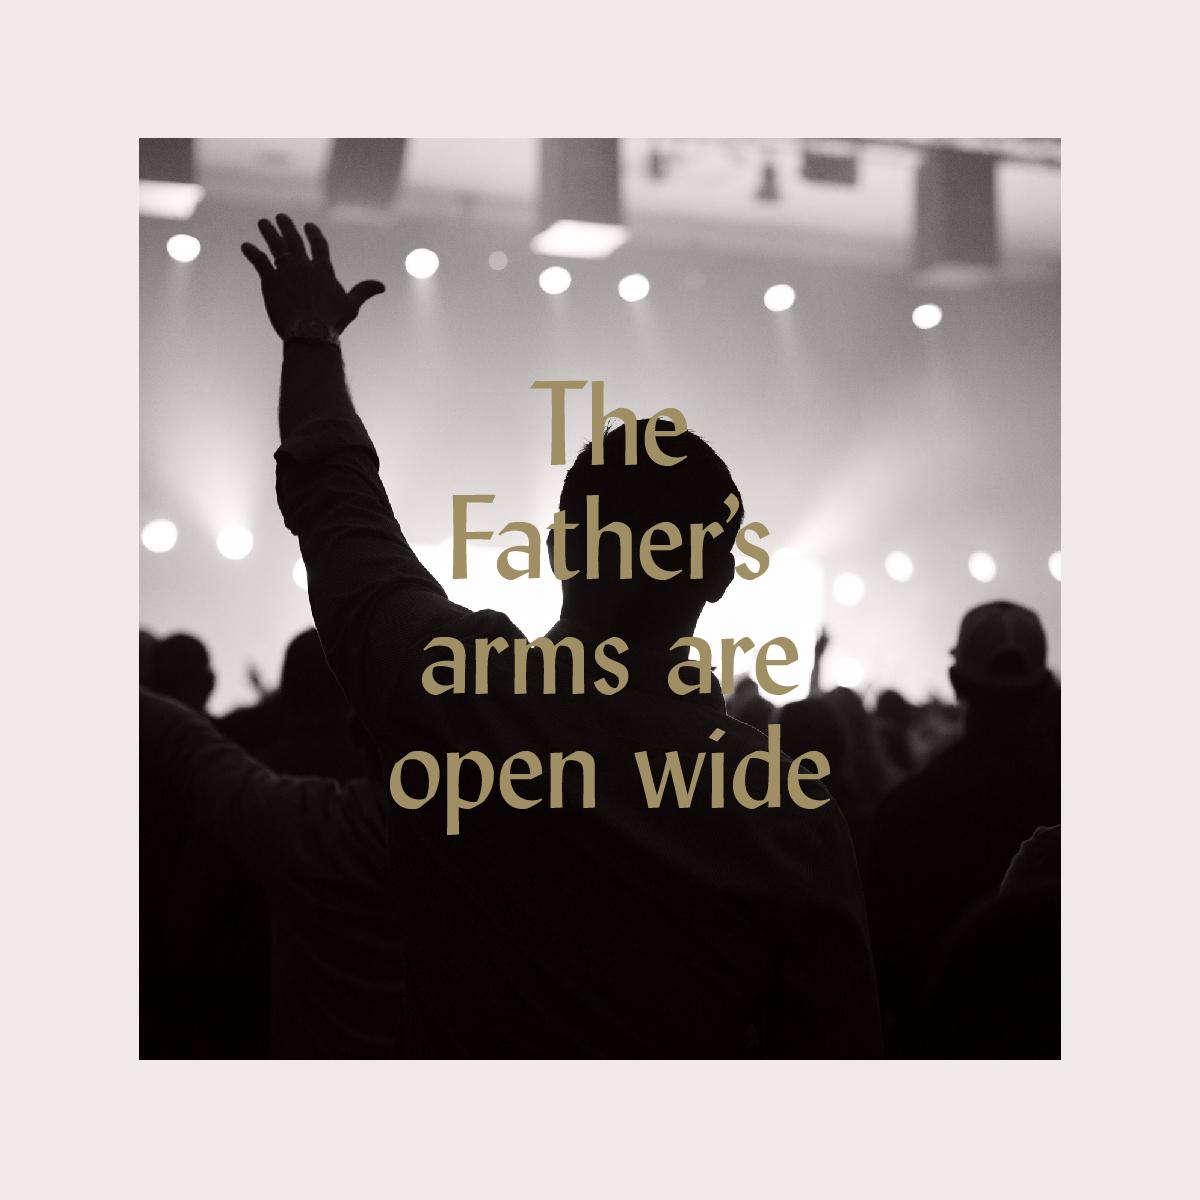 Elevation Worship Elevationwrshp Twitter - What's our current elevation